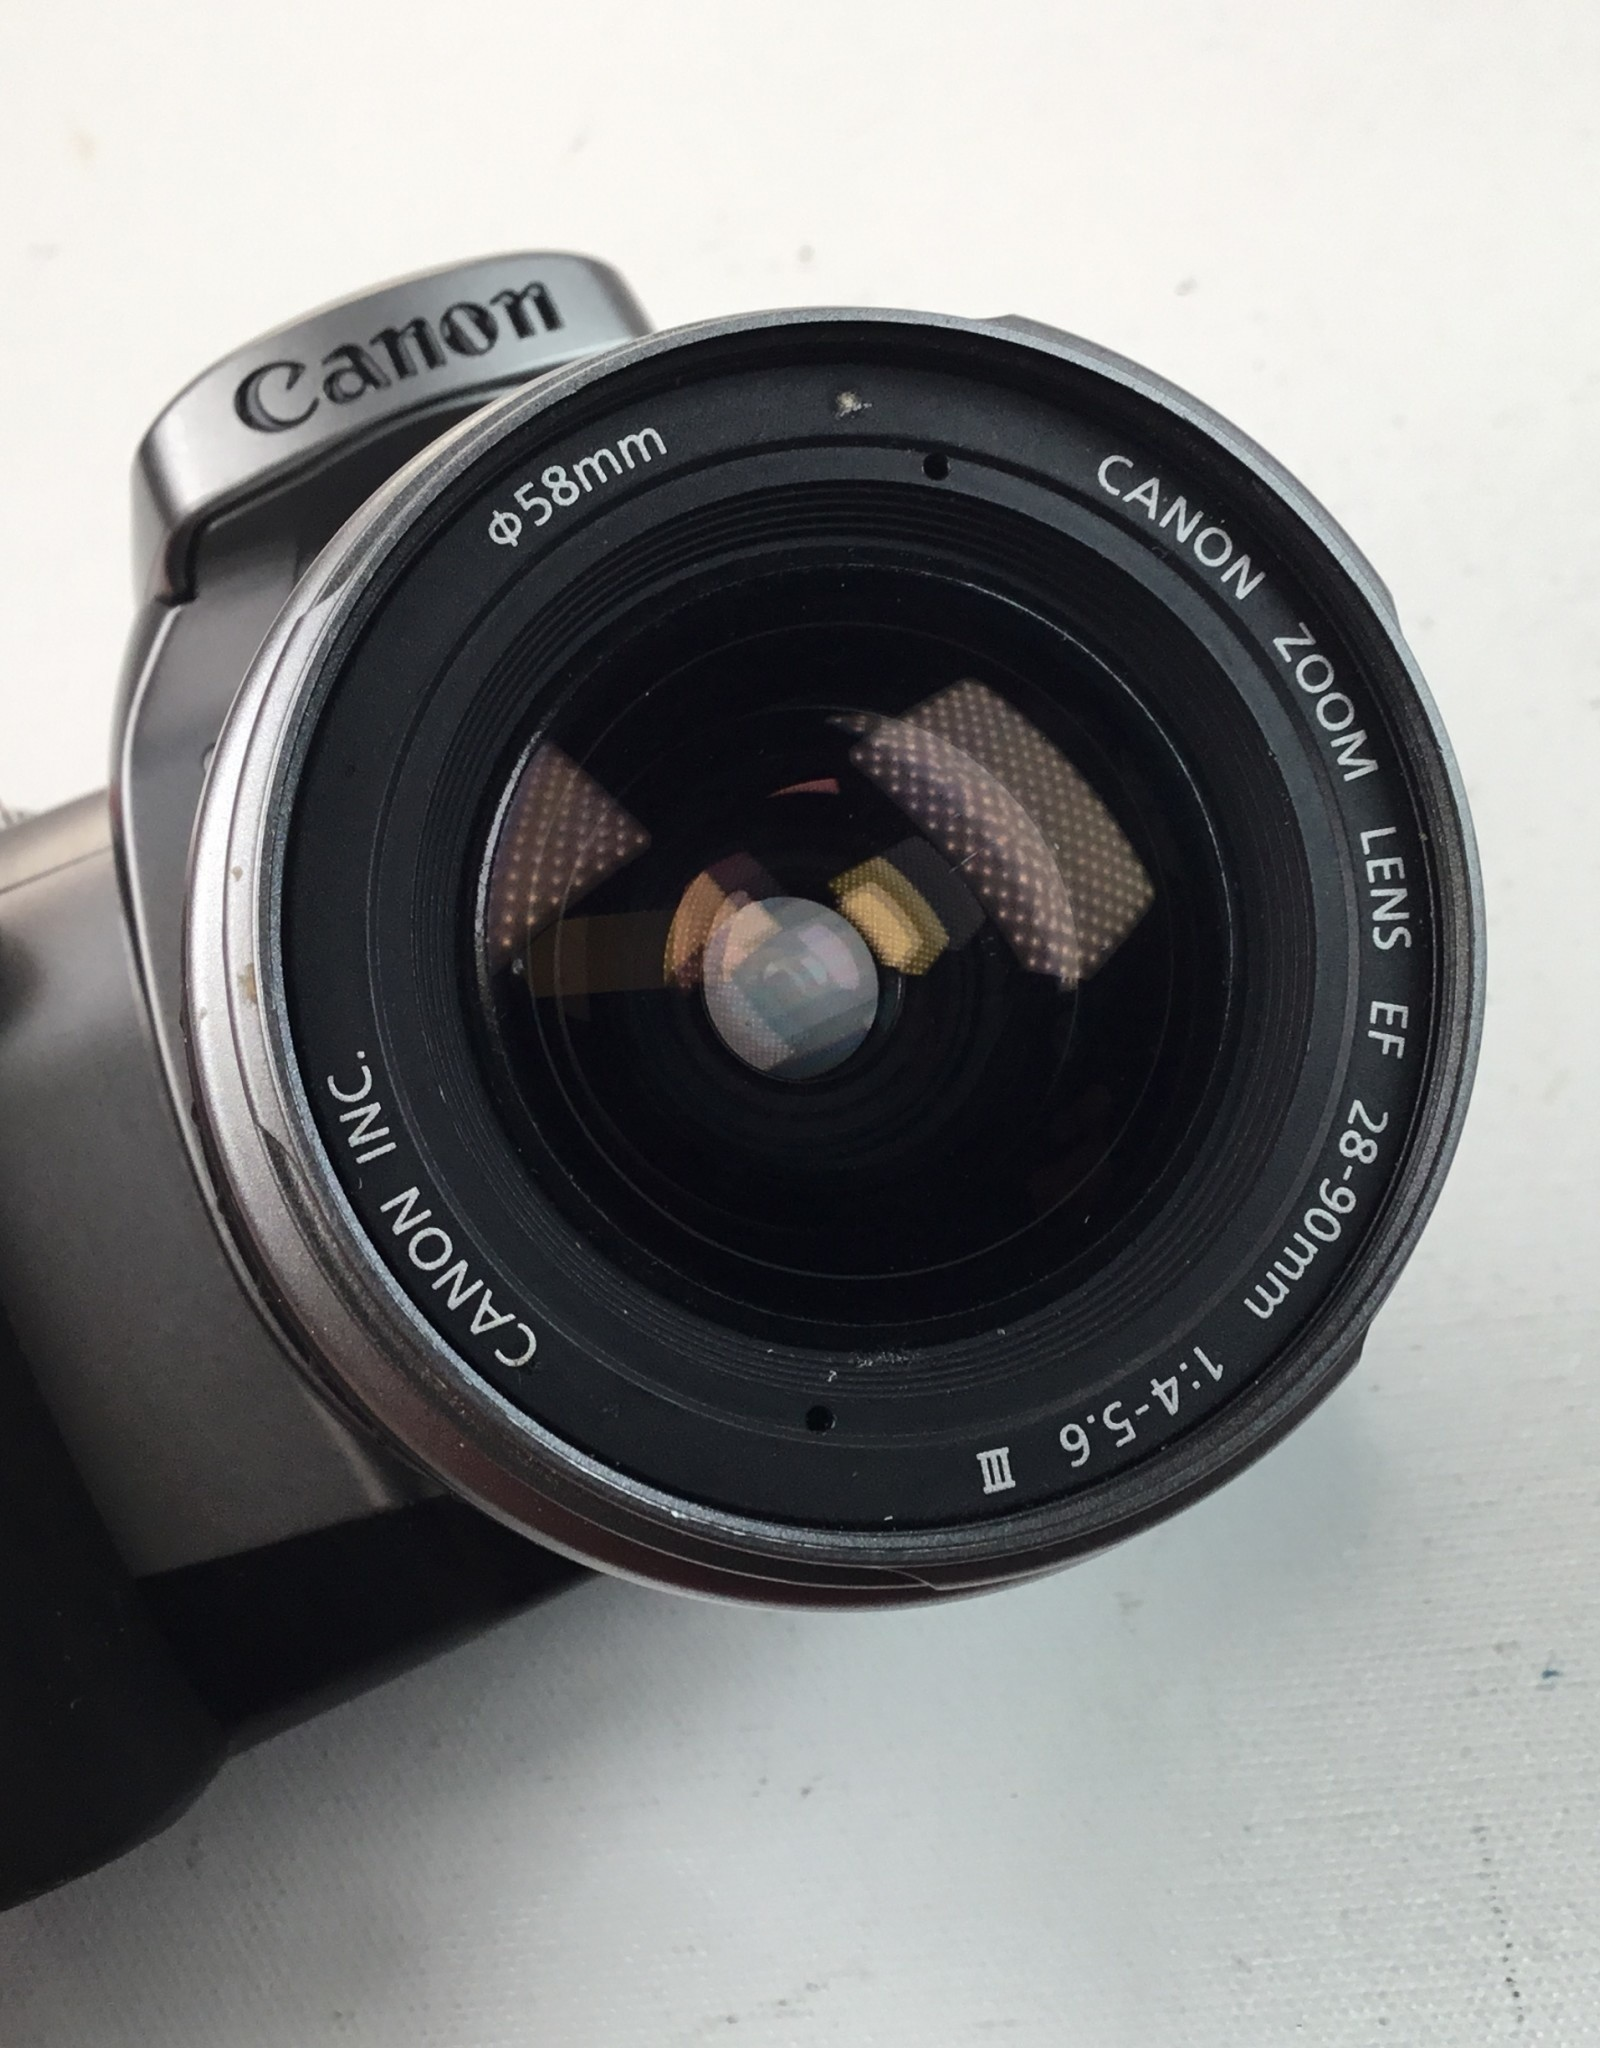 CANON Canon Rebel T2 35mm Film Camera with 28-90mm Used EX